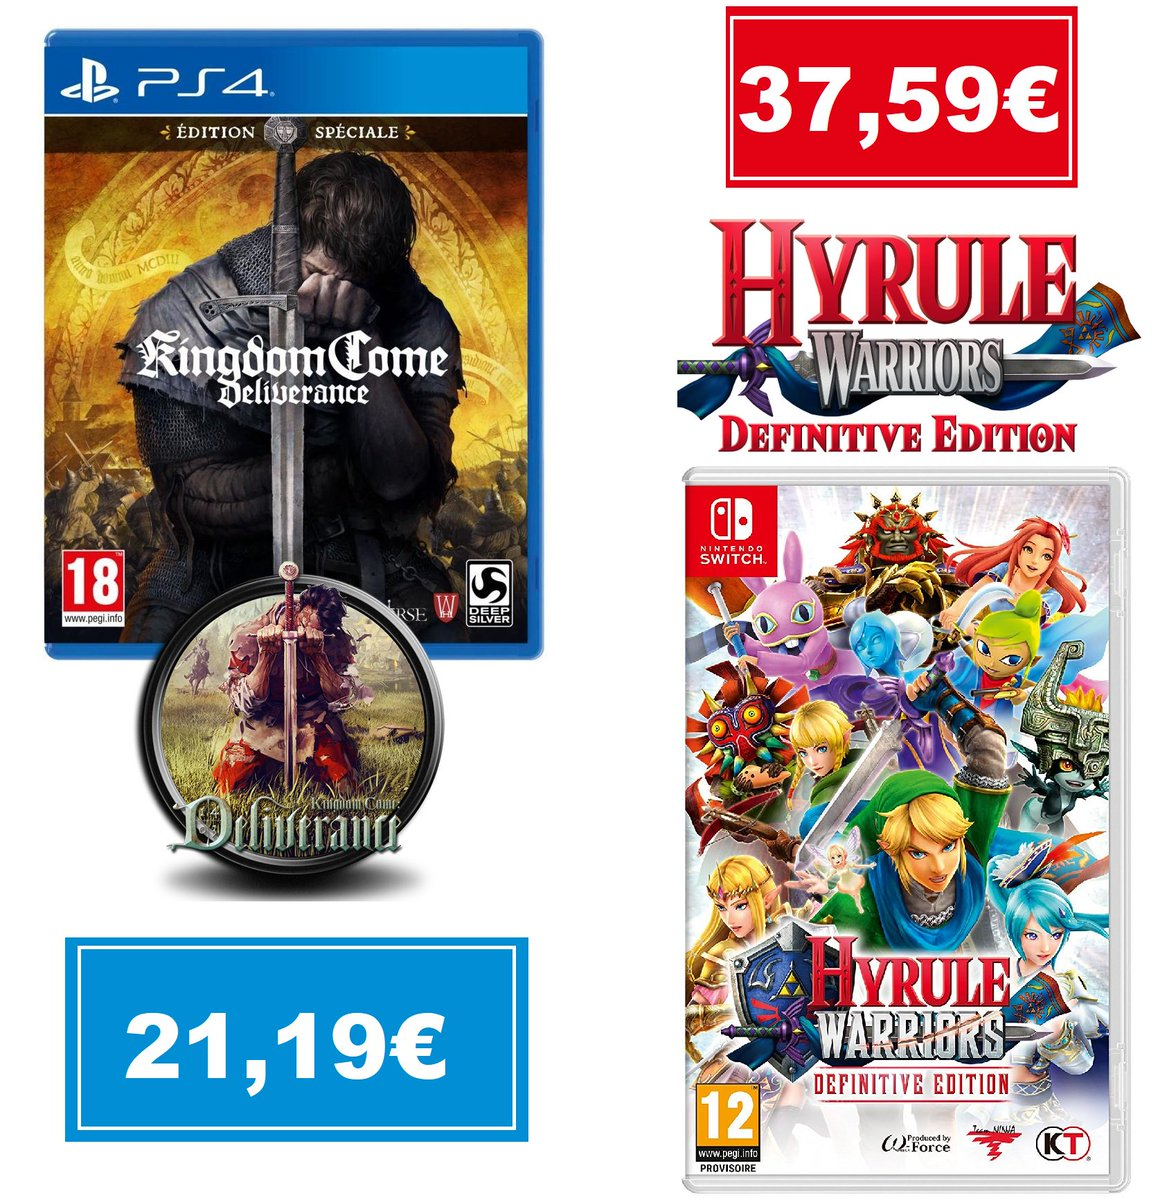 Faites votre Choix Hyrule Warriors : Definitive Edition sur Switch à 37,59€ https://jvdeal.fr/d3168 Kingdom Come : Deliverance - Edition Spéciale sur PS4 à 21,19€ https://t.co/mQZ8EiZhaD #bonplan #jeuxvideo #kingdomcomedeliverance #zelda  - FestivalFocus